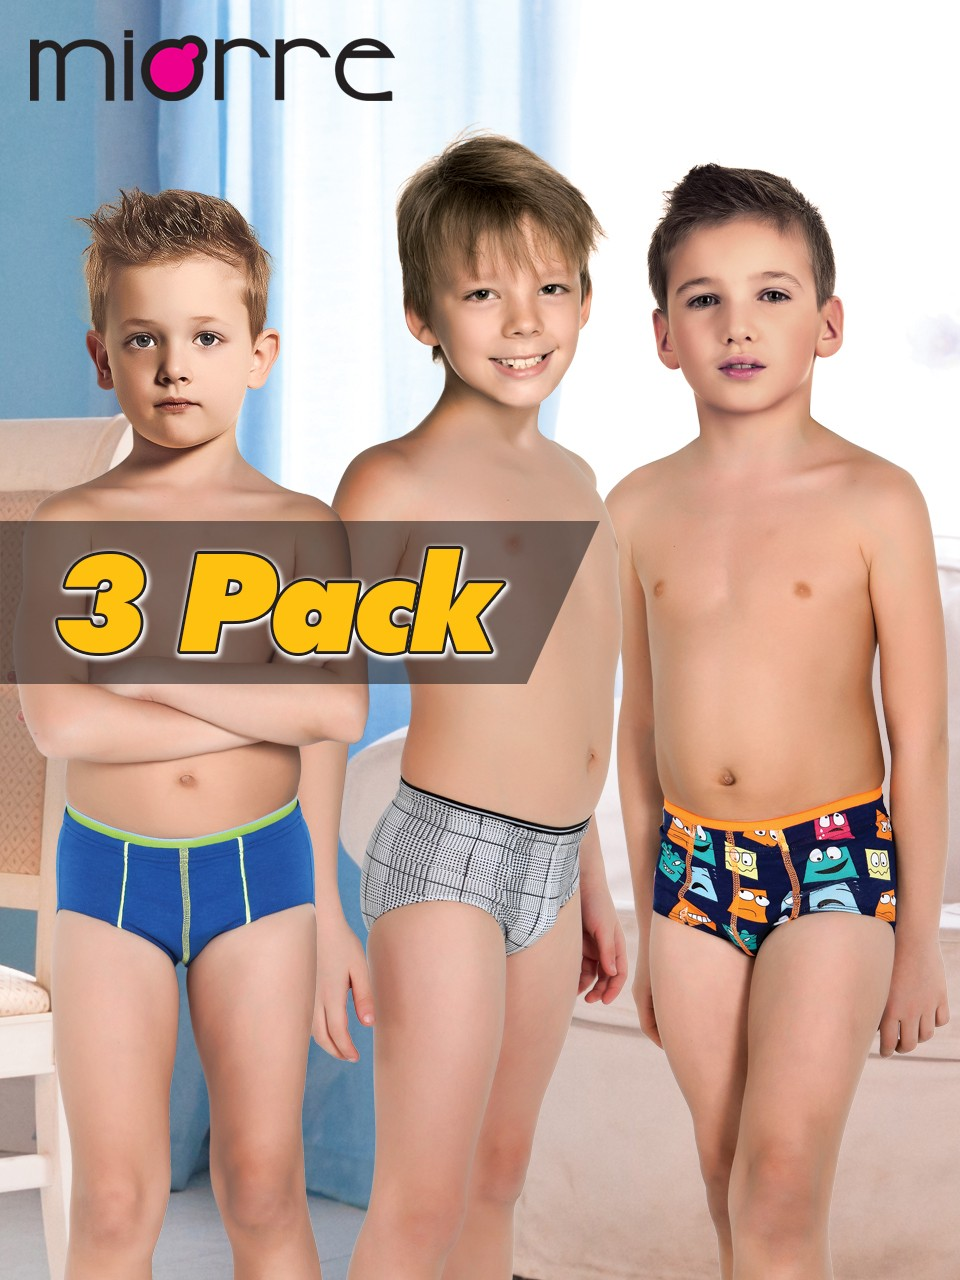 Boy's Boxer Briefs - When comfort is the bottom line, you can count on our boys' underwear to deliver. Available in soft cotton and performance fabrics, our boys' boxer briefs feature tag-free comfort, soft and stretchable waistbands, no ride up leg bands and tag-free labels.